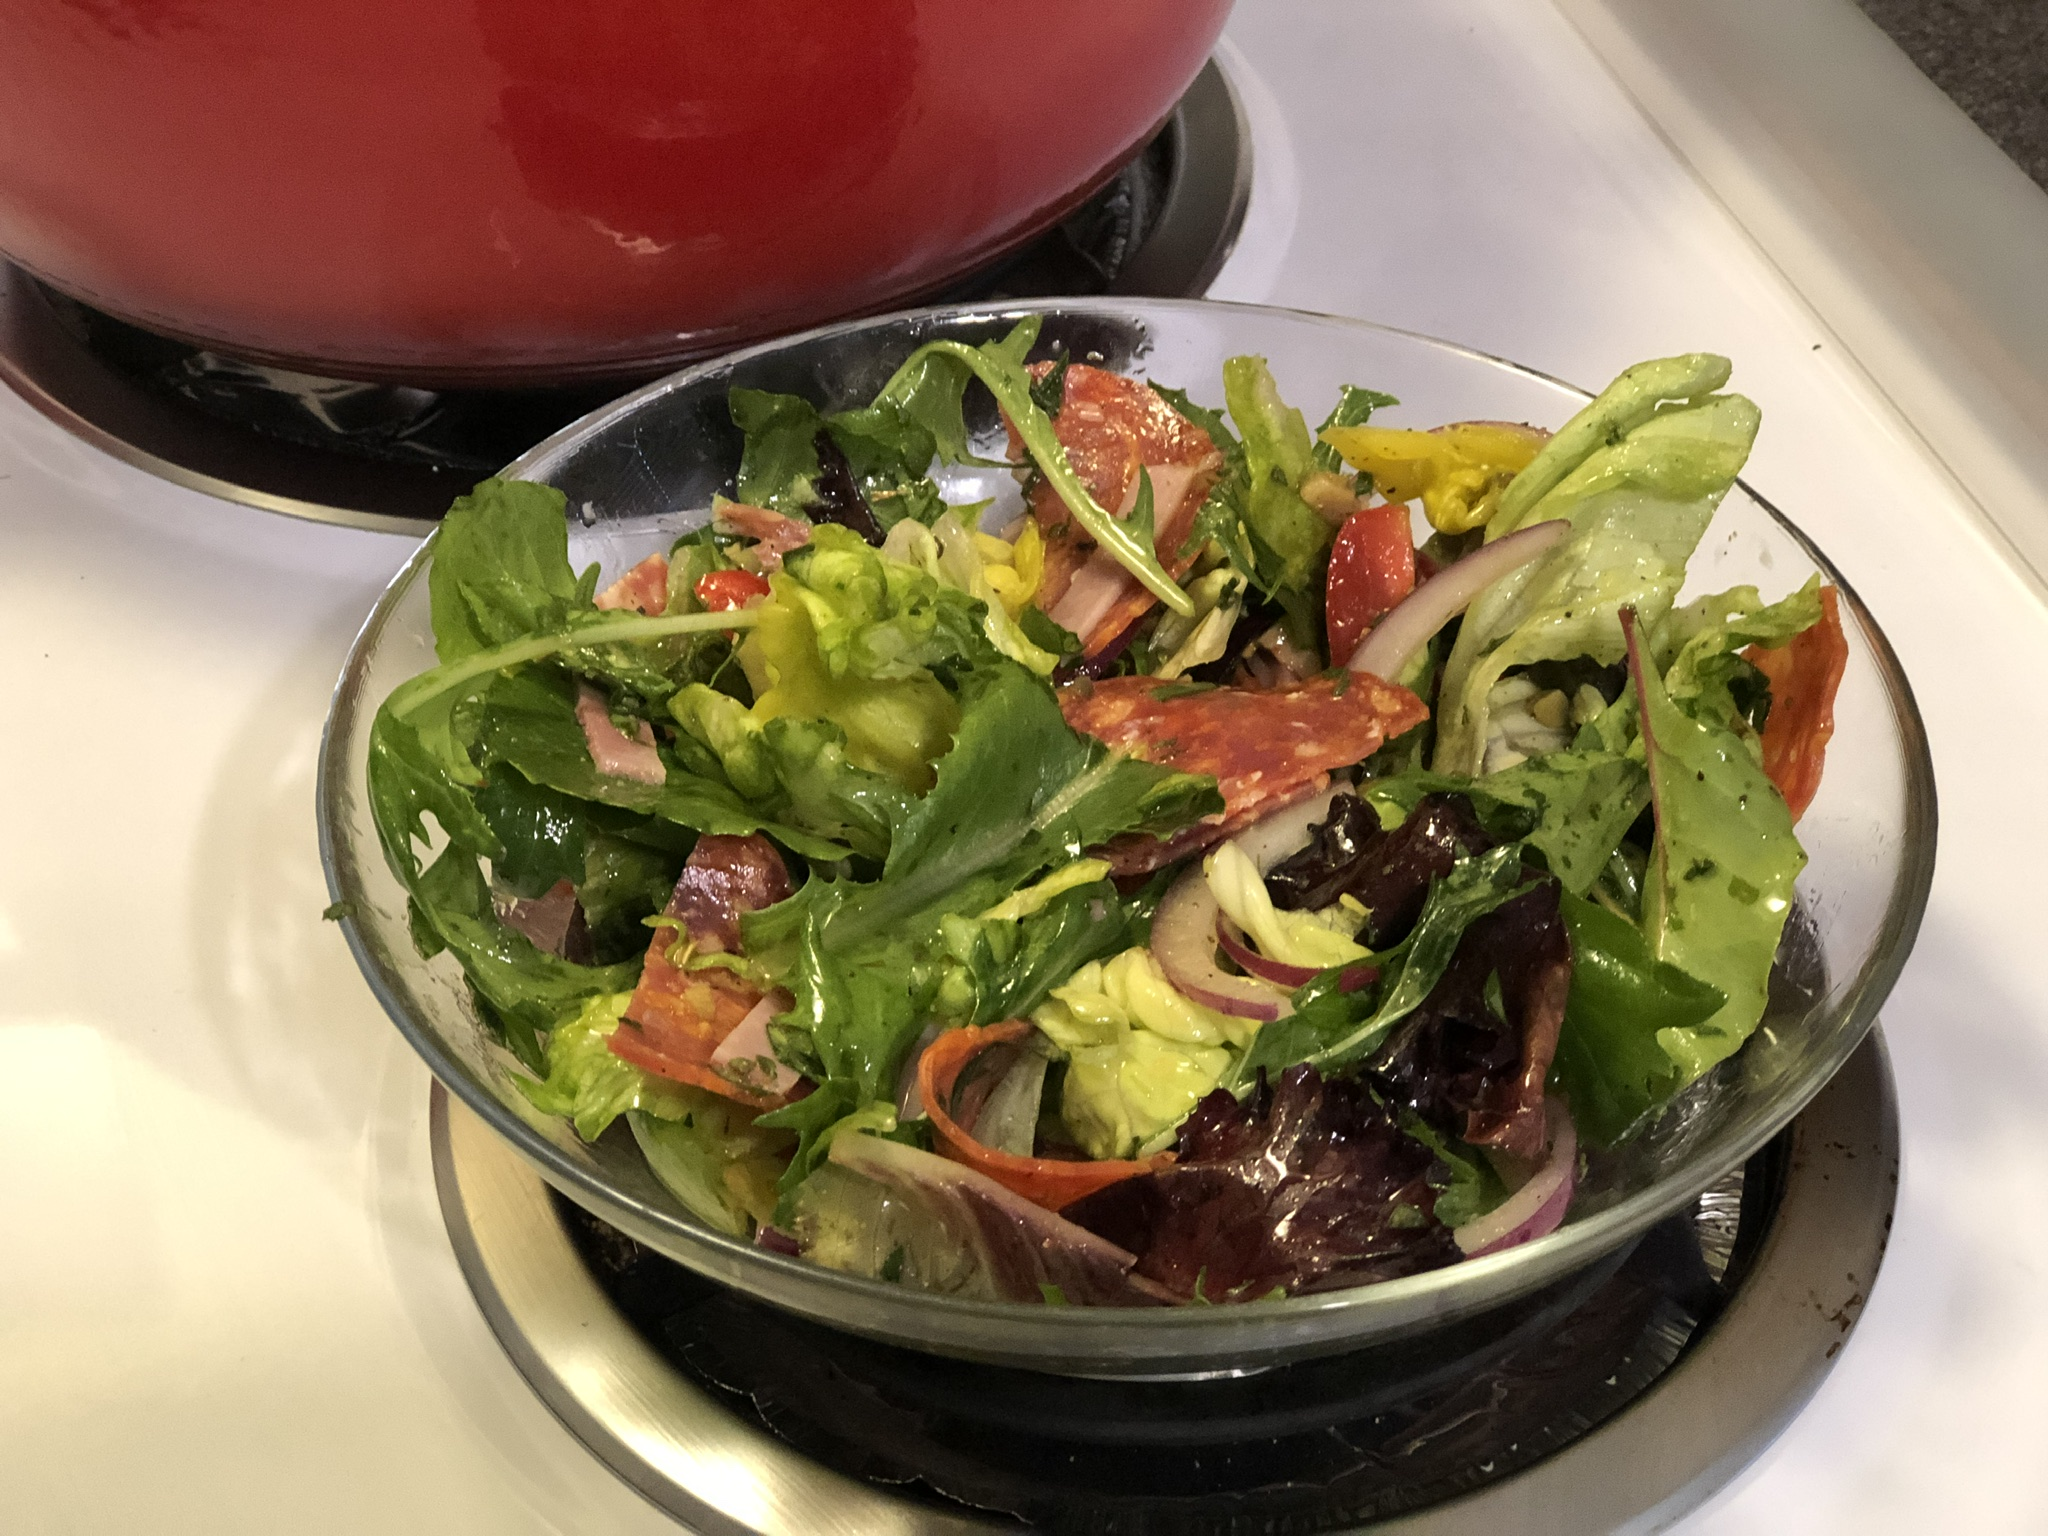 Keto Low Carb Italian Sub Salad